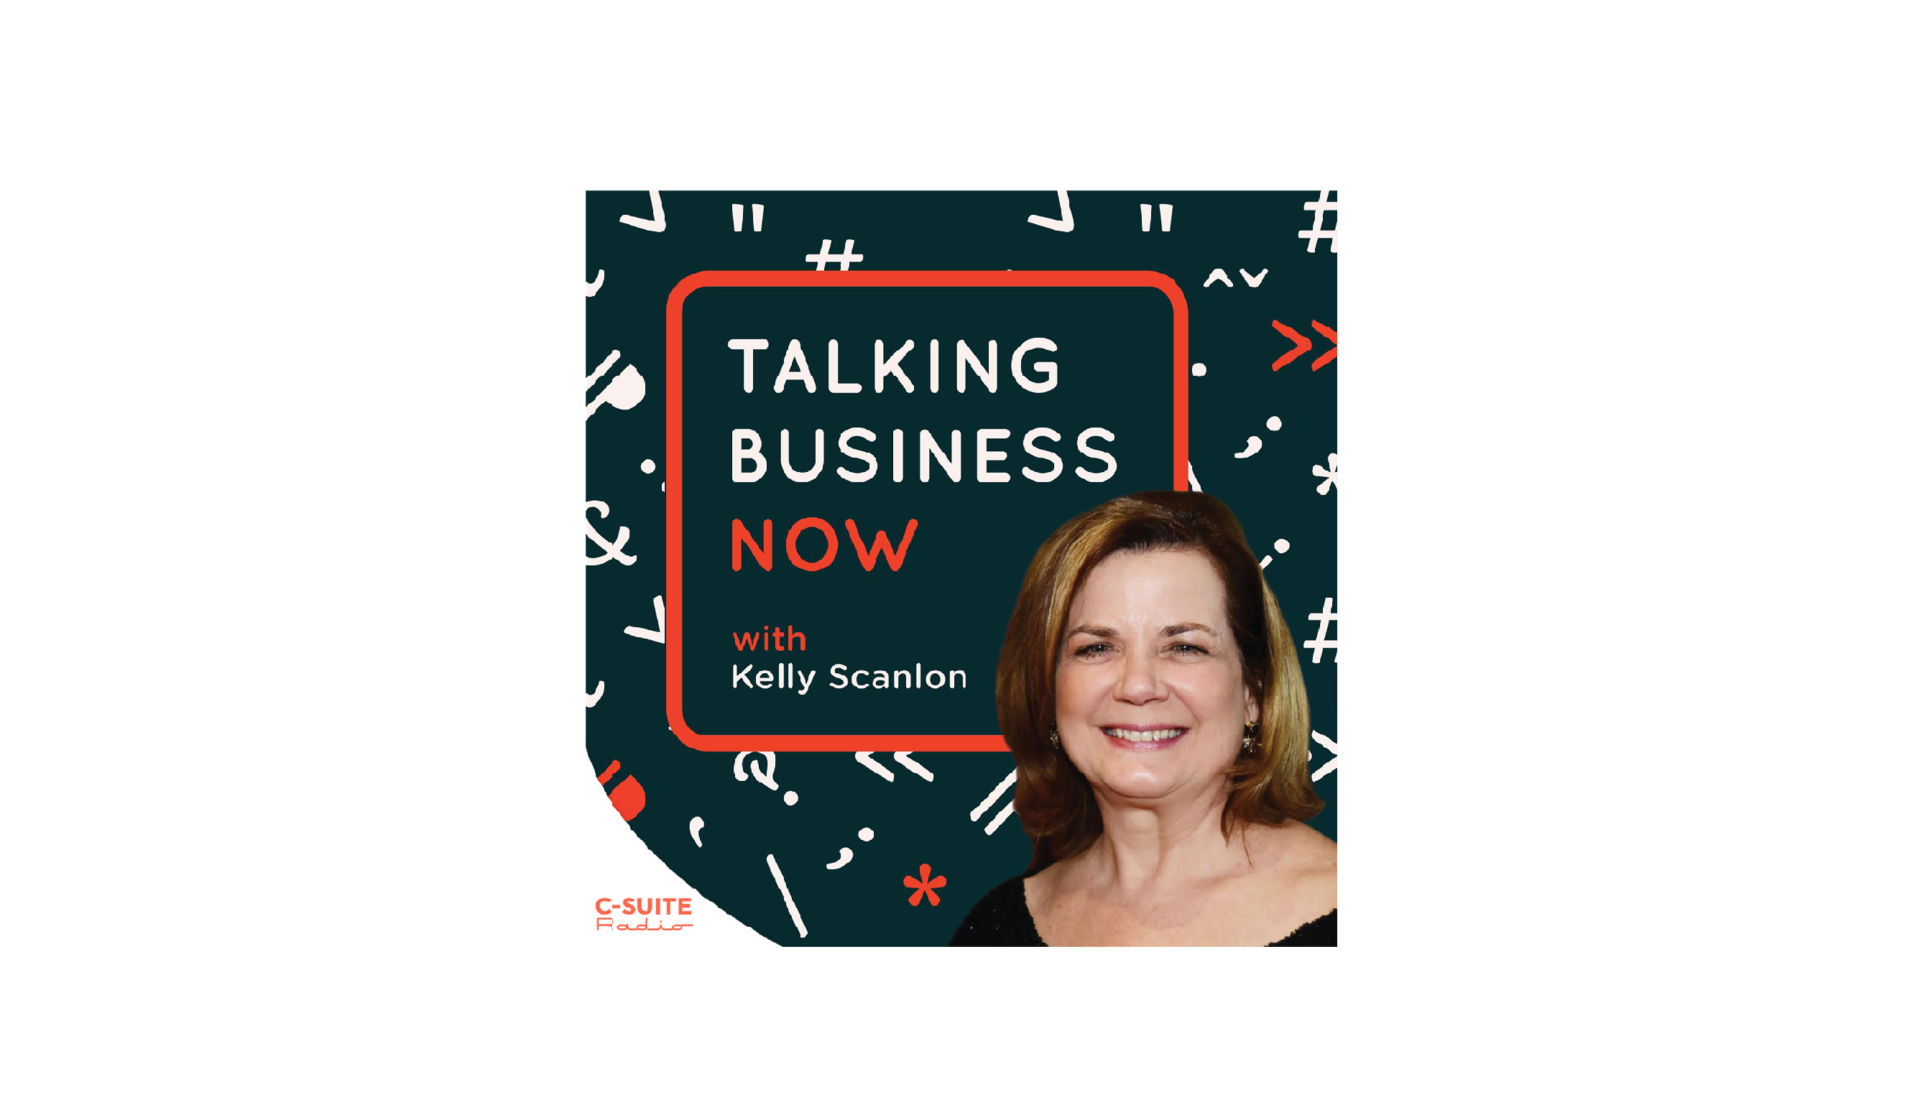 Talking Business Now with Kelly Scanlon